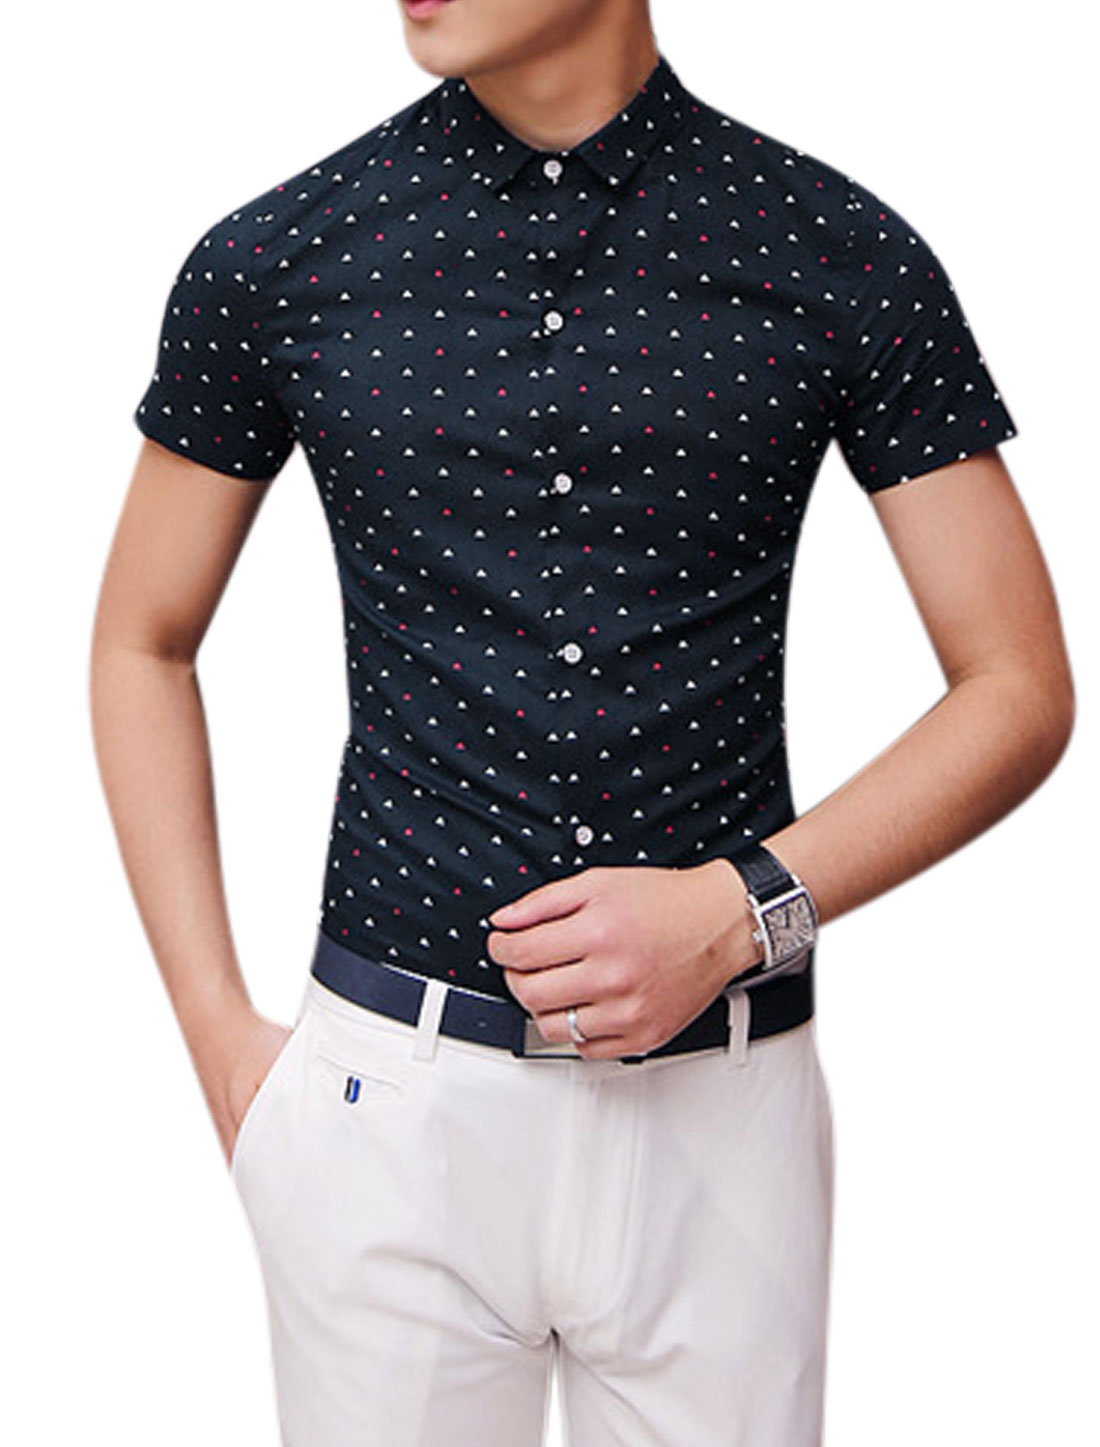 Man Triangle Pattern Button Down Short Sleeves Leisure Shirt Navy Blue S